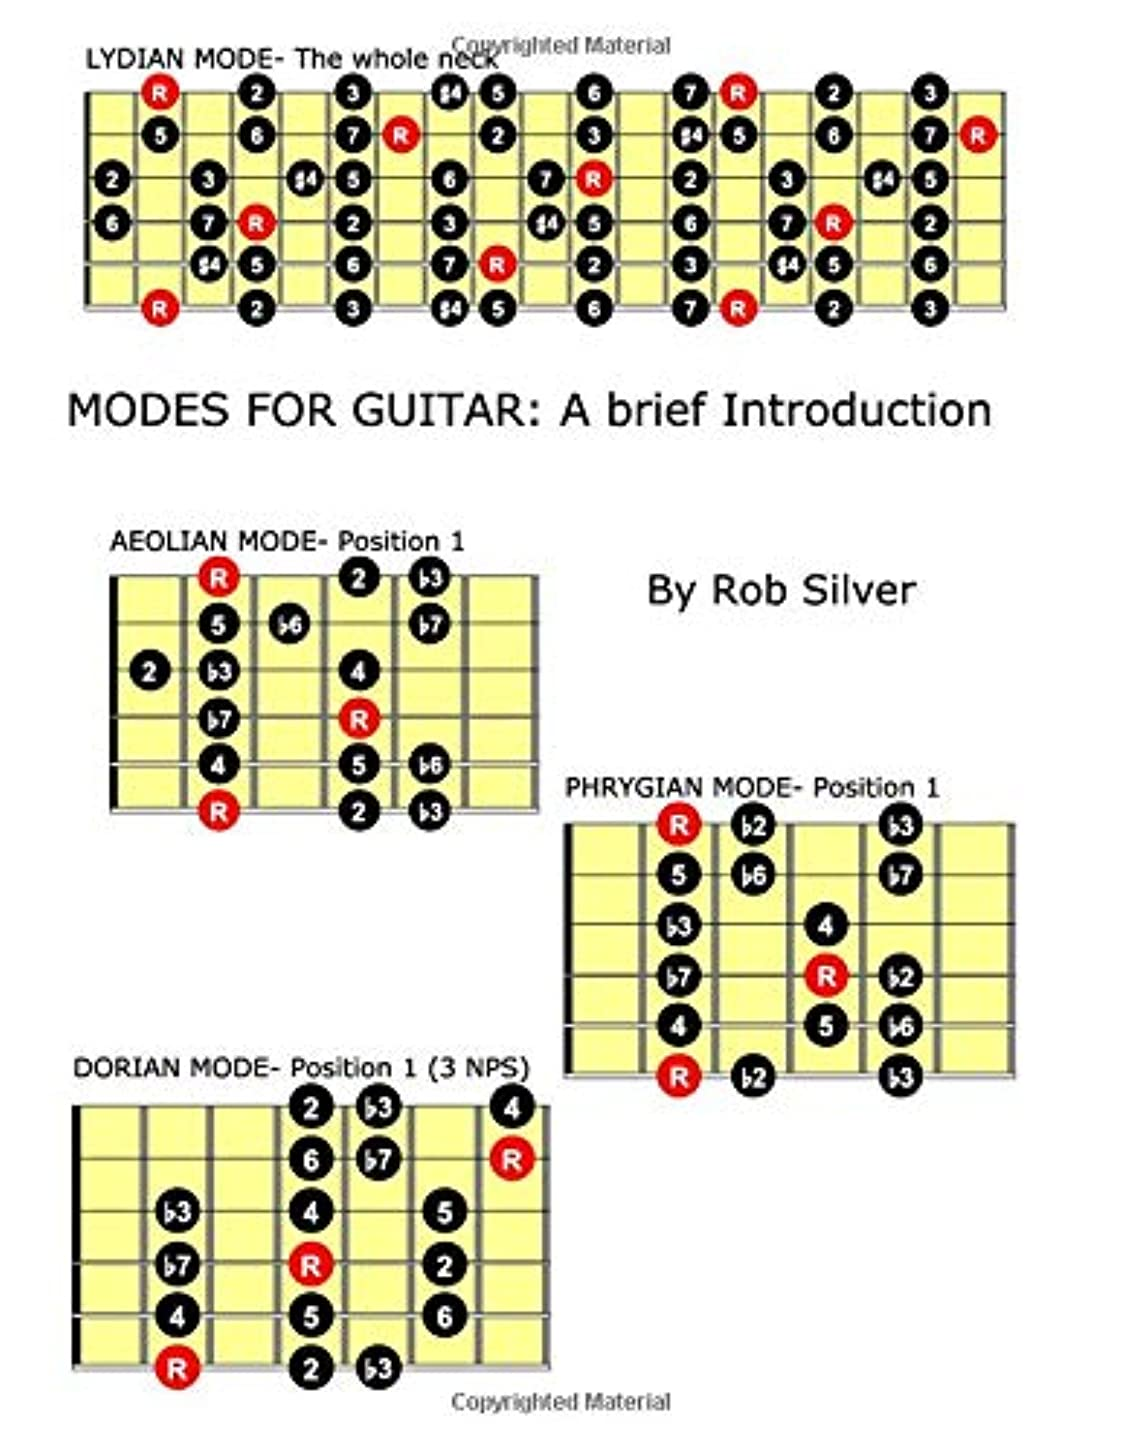 あそこ一時停止クーポンMODES FOR GUITAR: A brief introduction